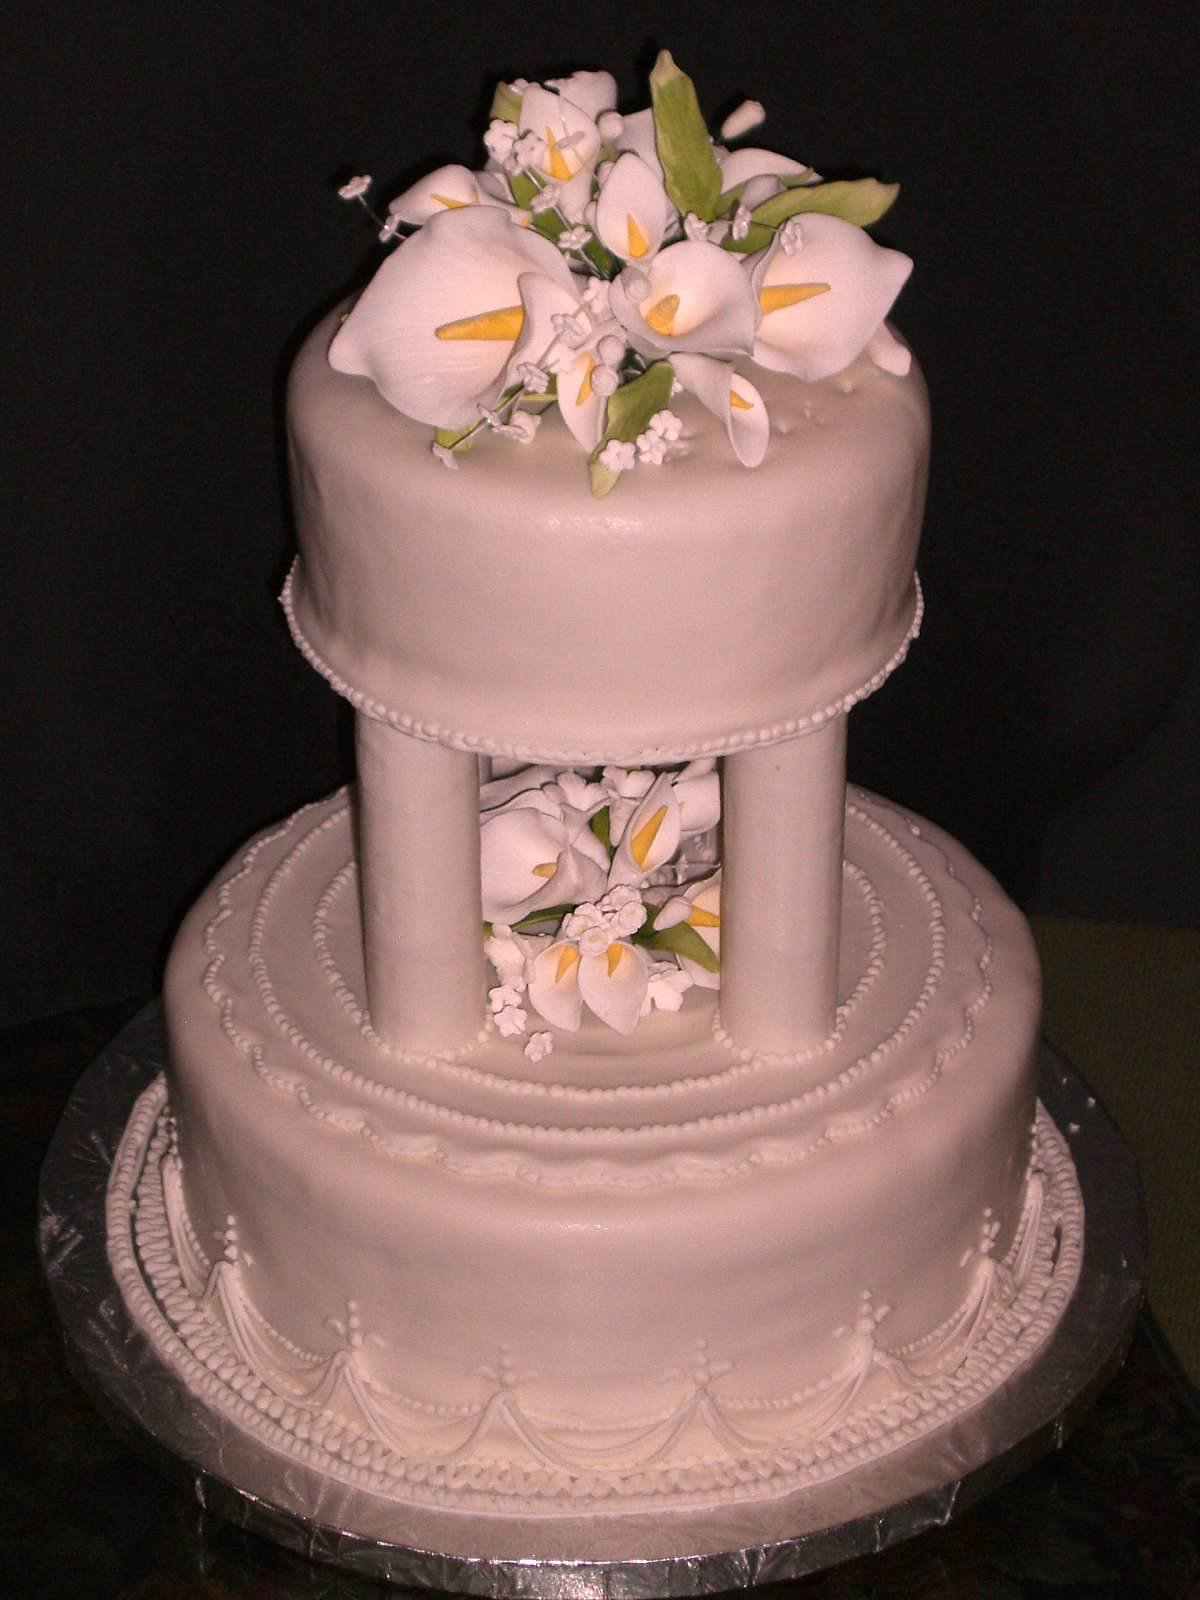 12 3 Tier Frosted Wedding Cakes Photo - 3 Tier Wedding Red Velvet ...